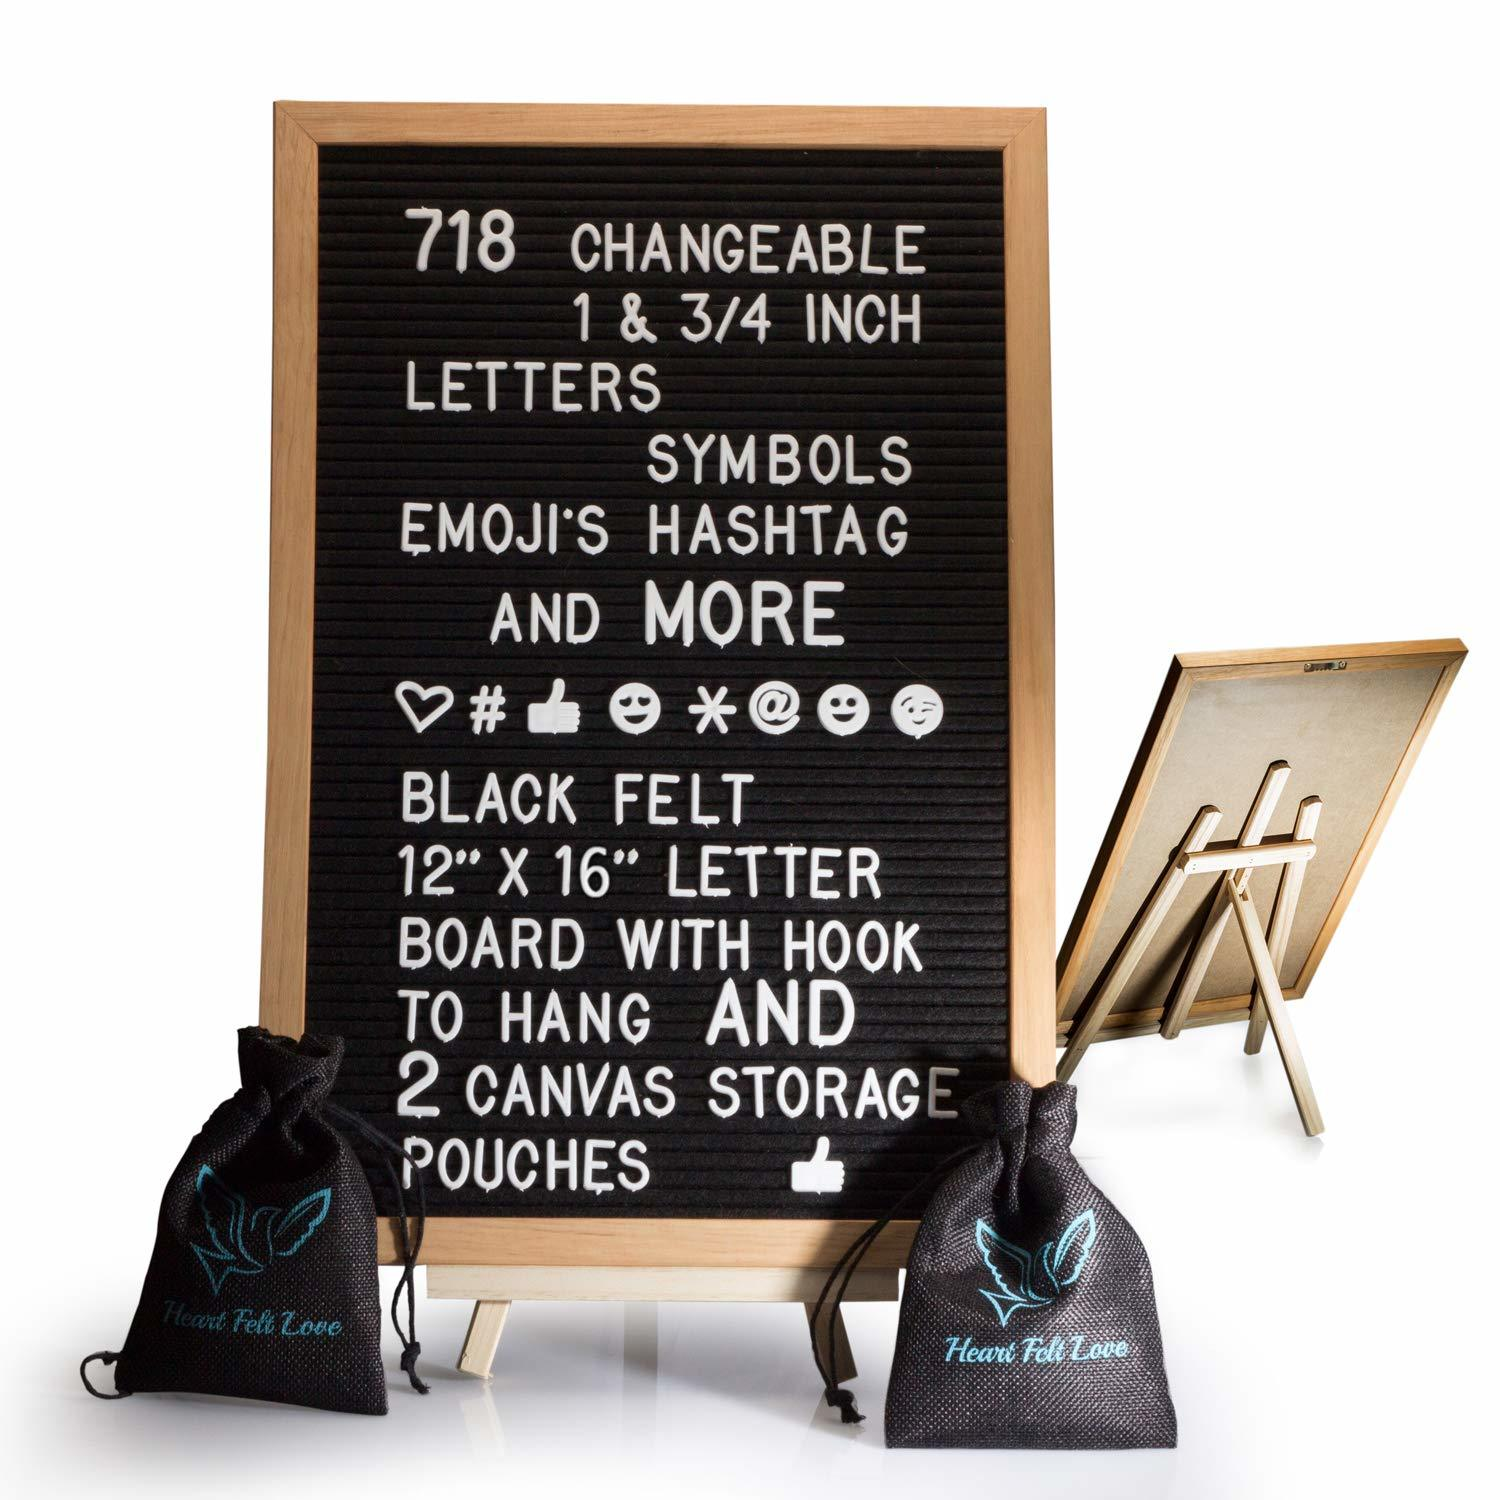 instagram tools black felt letter board